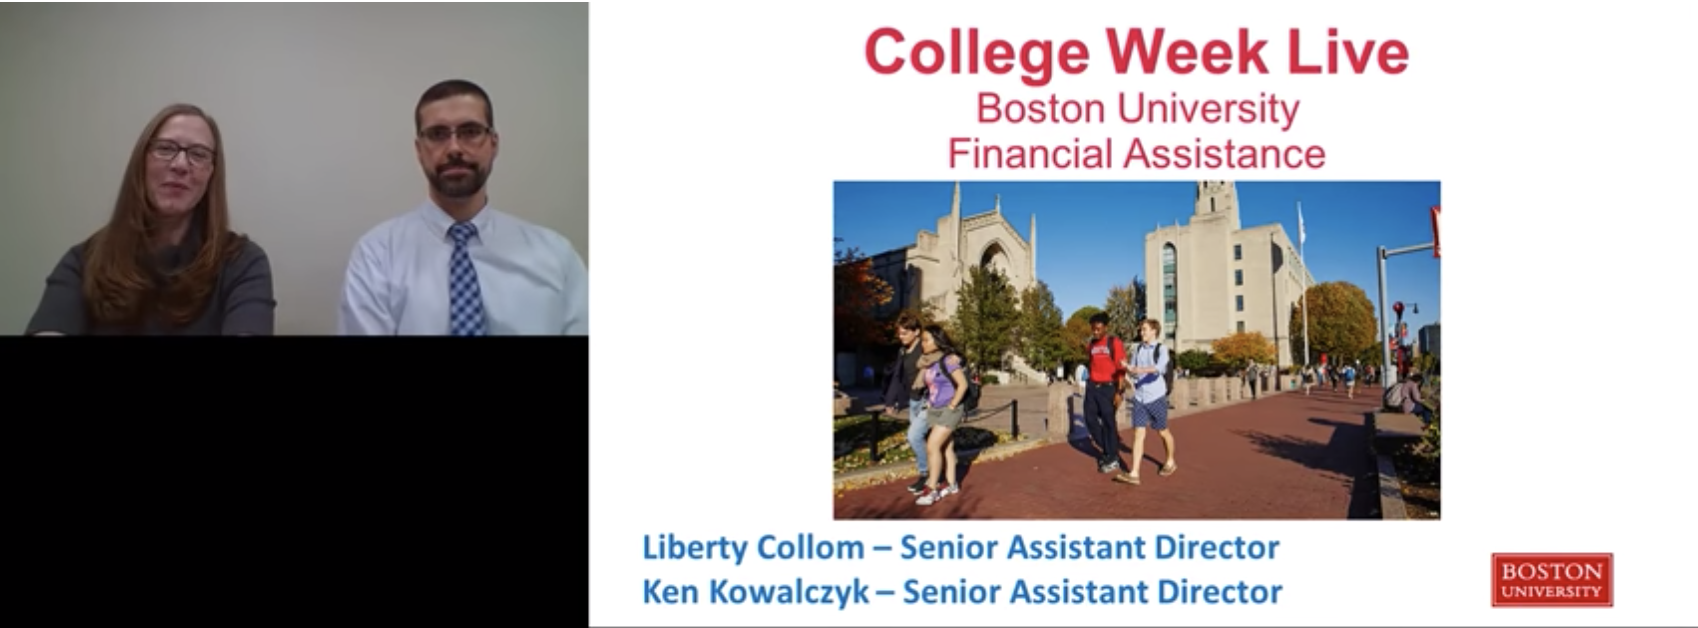 Boston university investment policy nj investment properties for sale